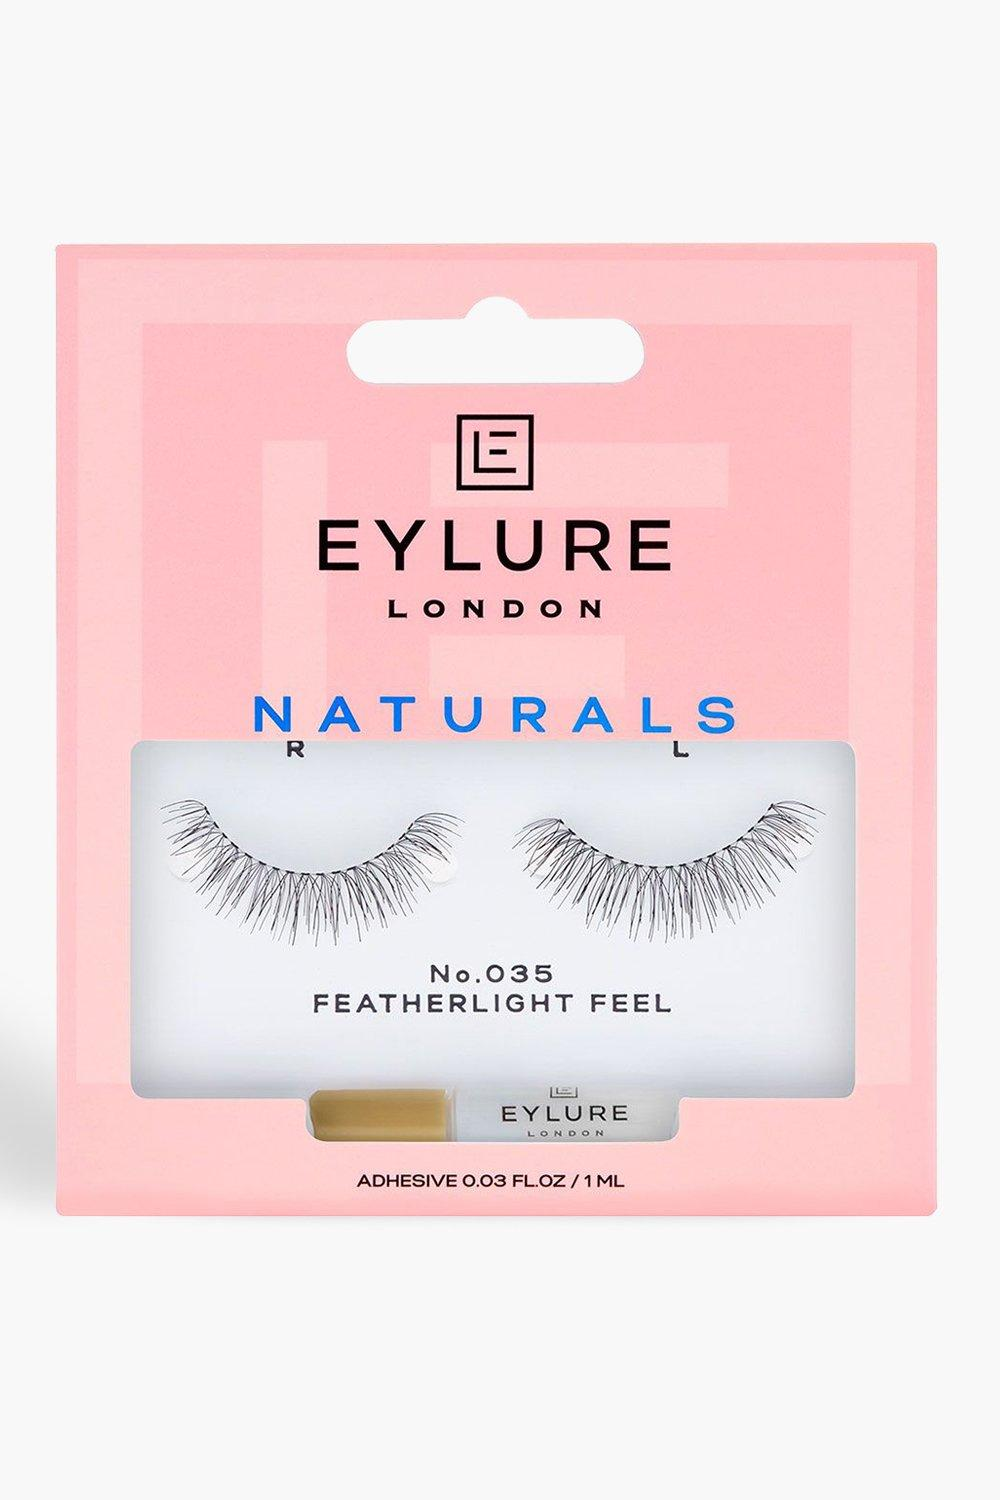 Eylure Womens Eylure Lengthening Lashes - 035 - Black - One Size, Black